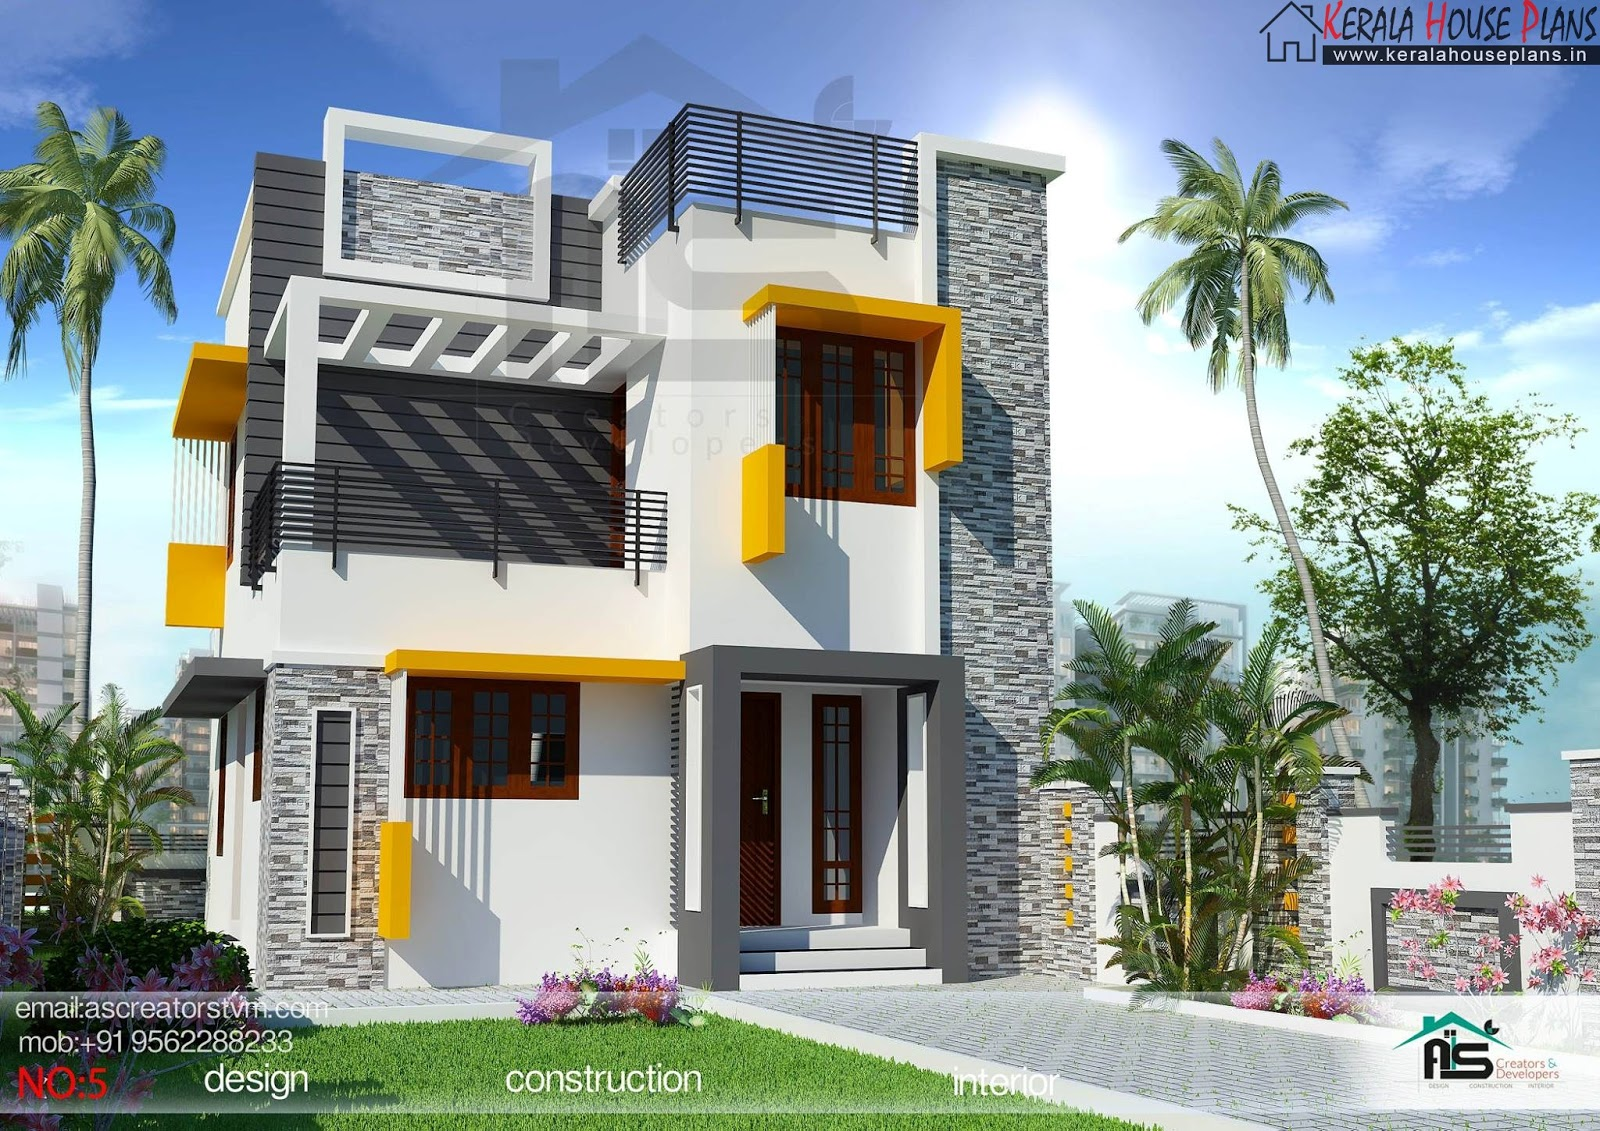 Three bedroom house plan kerala style kerala house plans for 3 bedroom plan in kerala